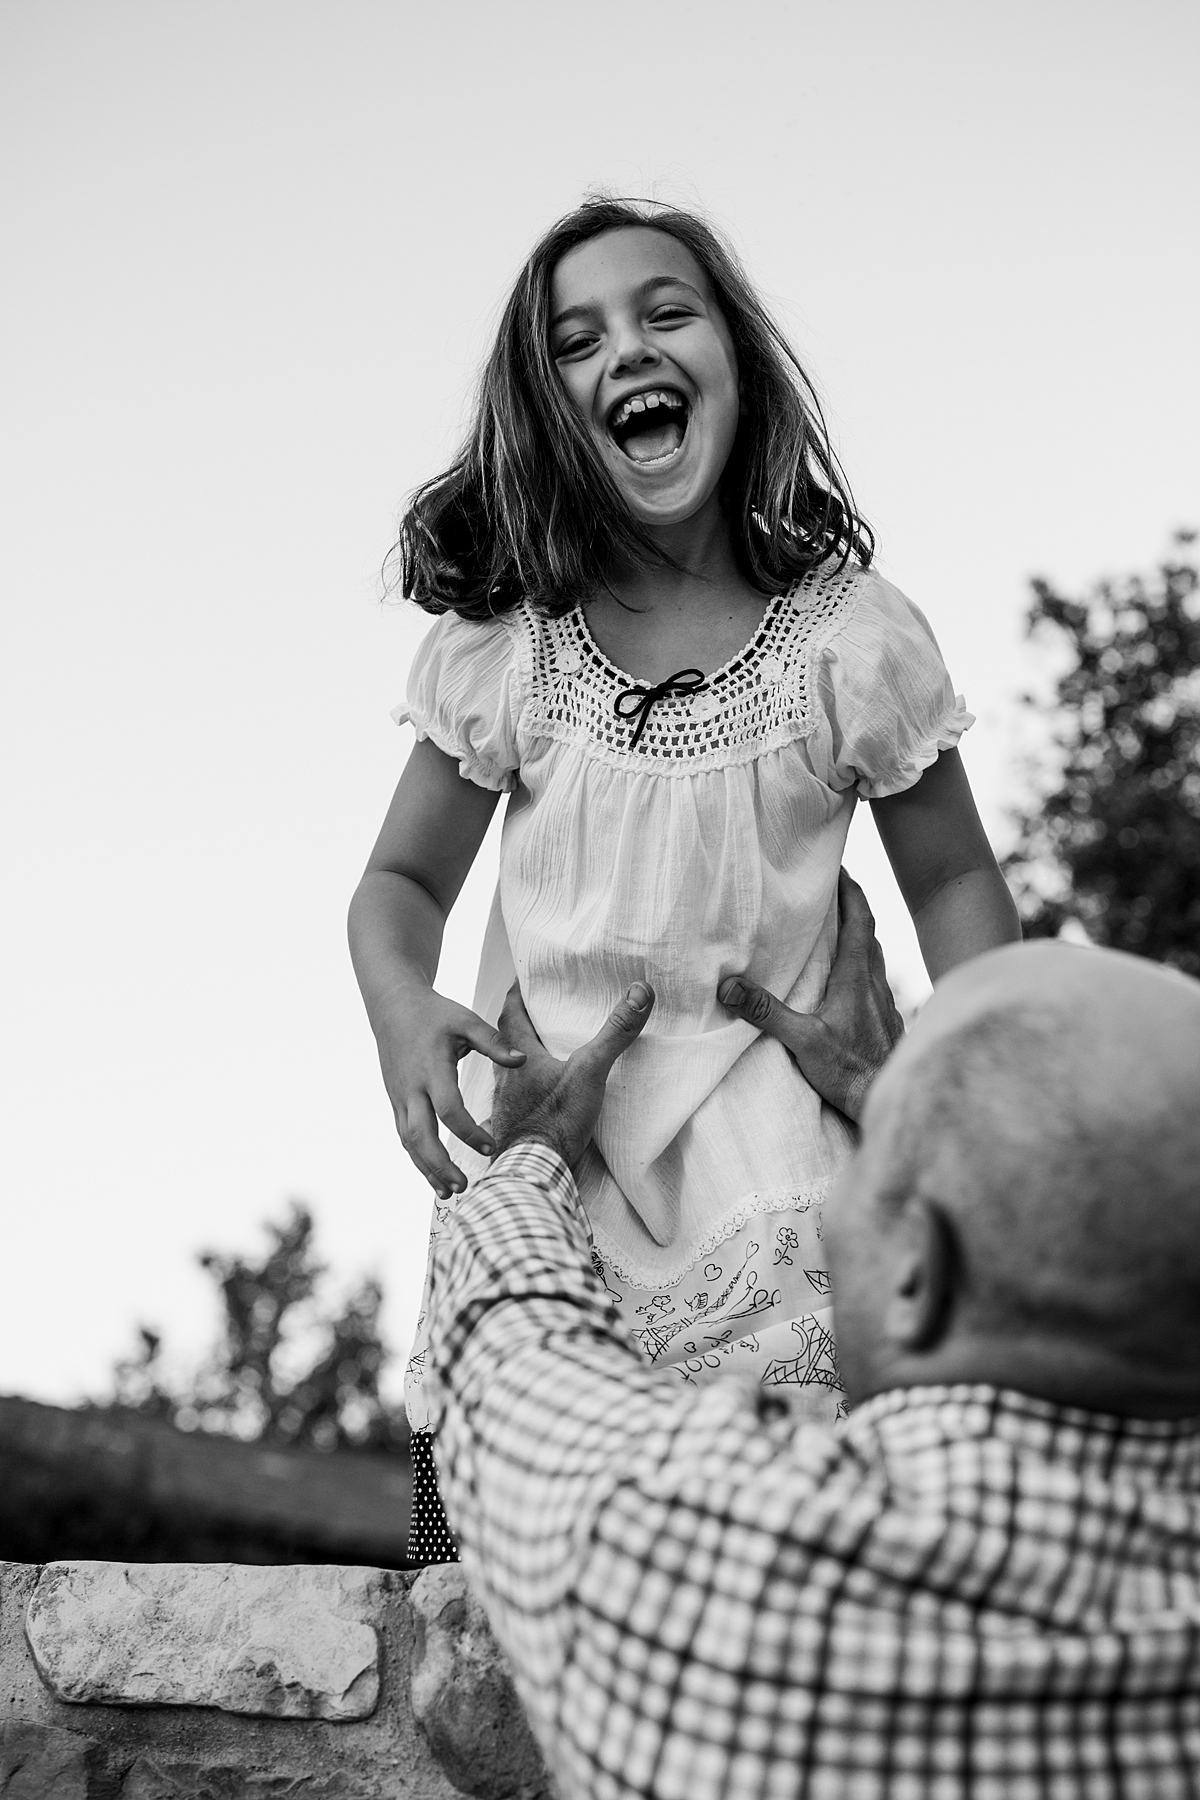 Orange County family photographer. Candid photo of dad reaching for his daughter as she jumps off stone wall during family photo shoot at Quail Hill with Krystil McDowall Photography